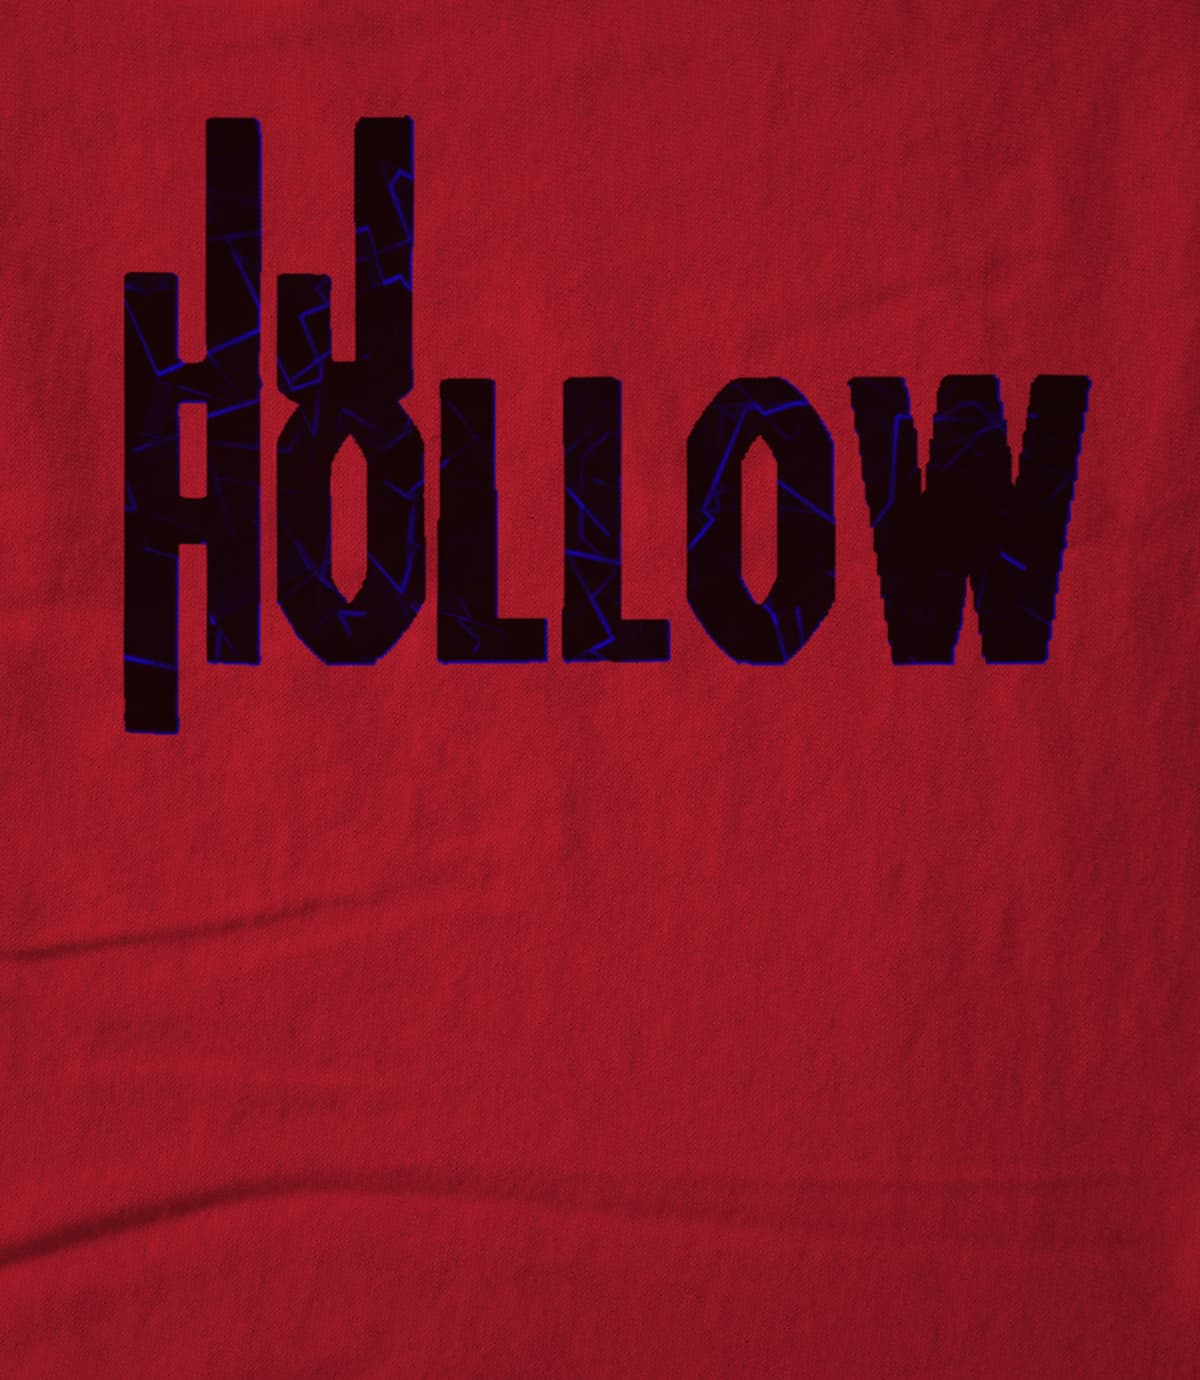 Jj hollow hollow  white  1595803986